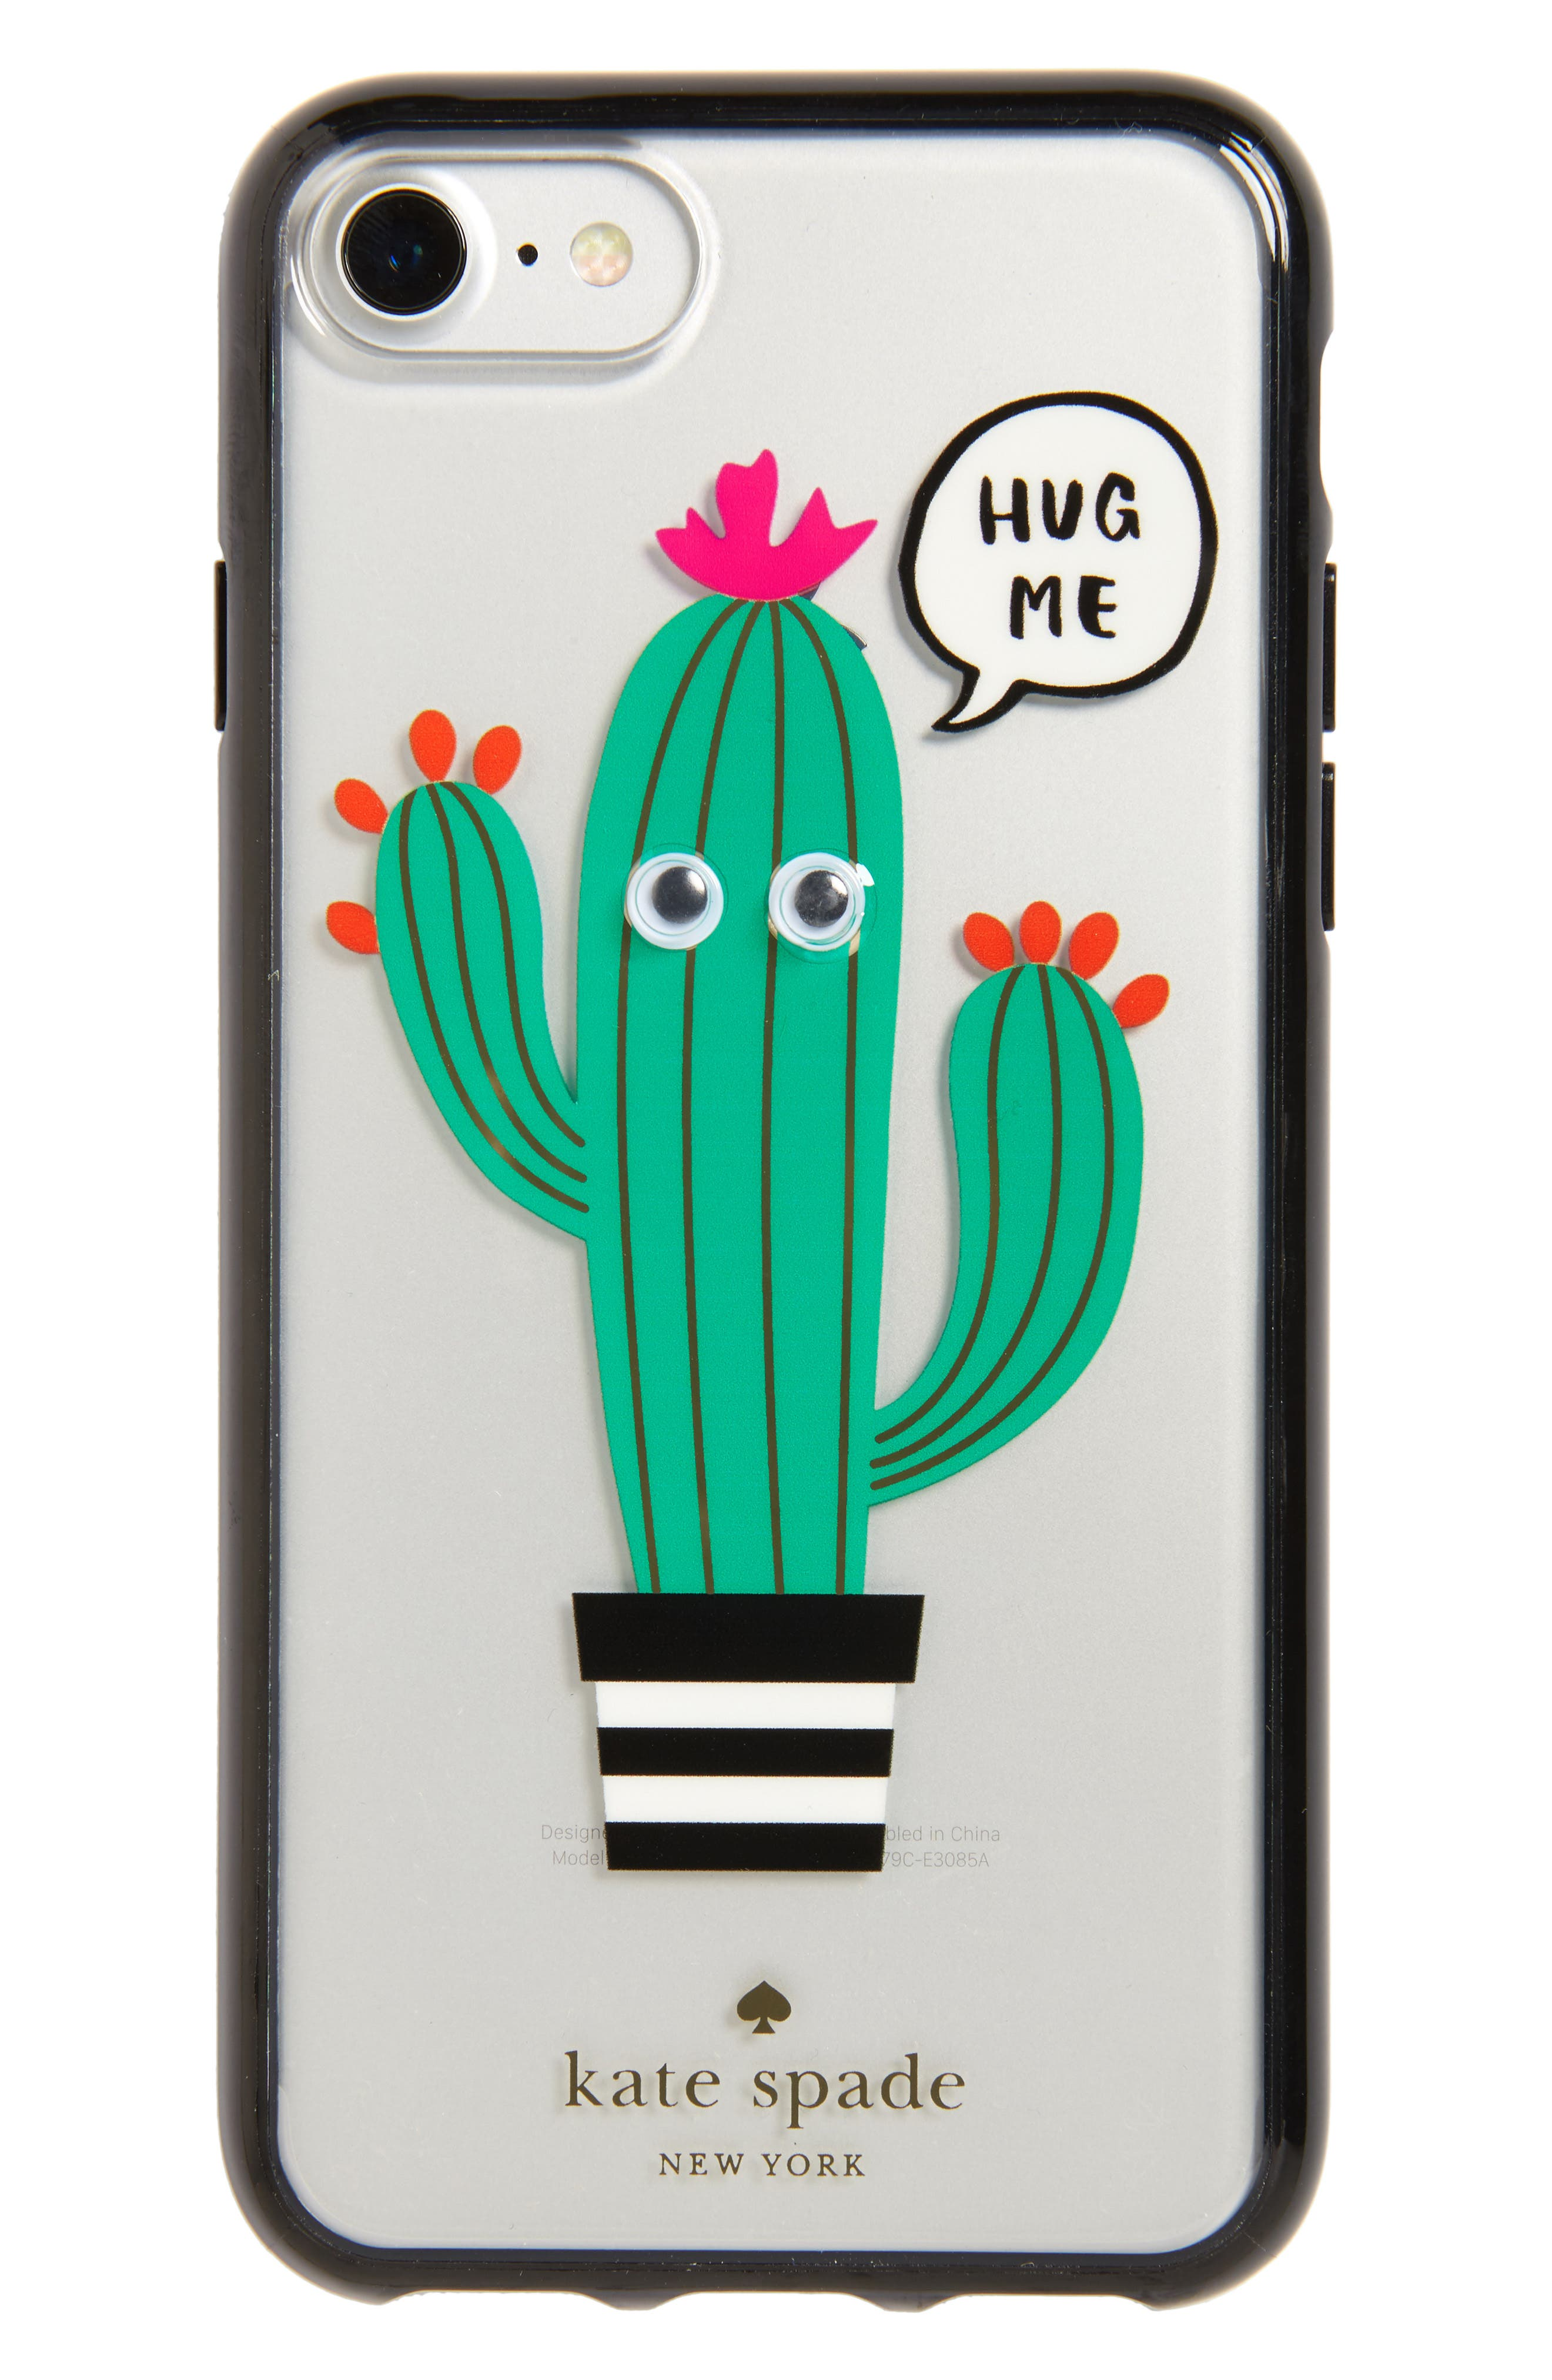 KATE SPADE NEW YORK hug me iPhone 7 case